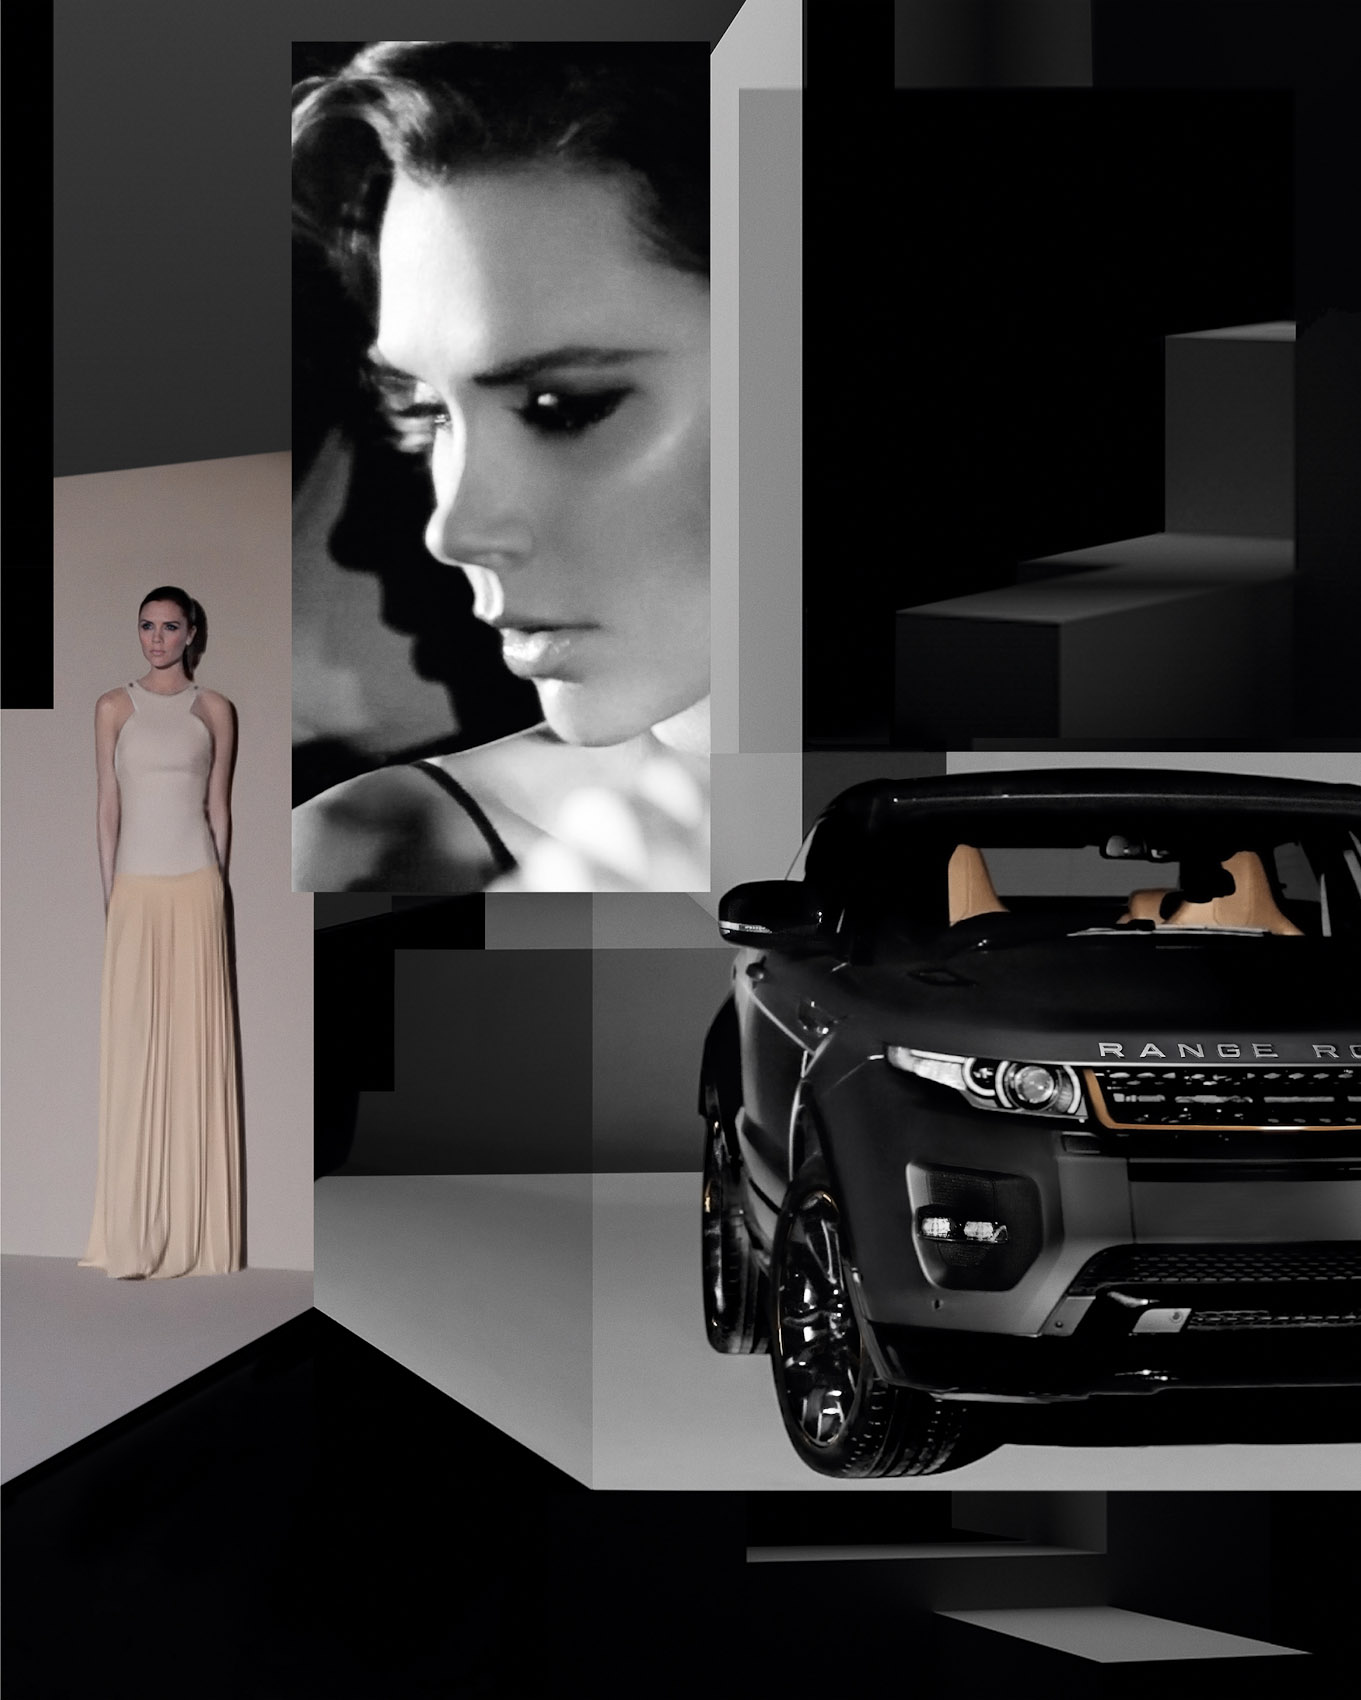 04_nick_knight_shoot_range_rover_evoque_se_with_victoria_beckham_02_rgbnick_knight_shoot_range_rover_evoque_se_with_victoria_beckham_04_rgb-2